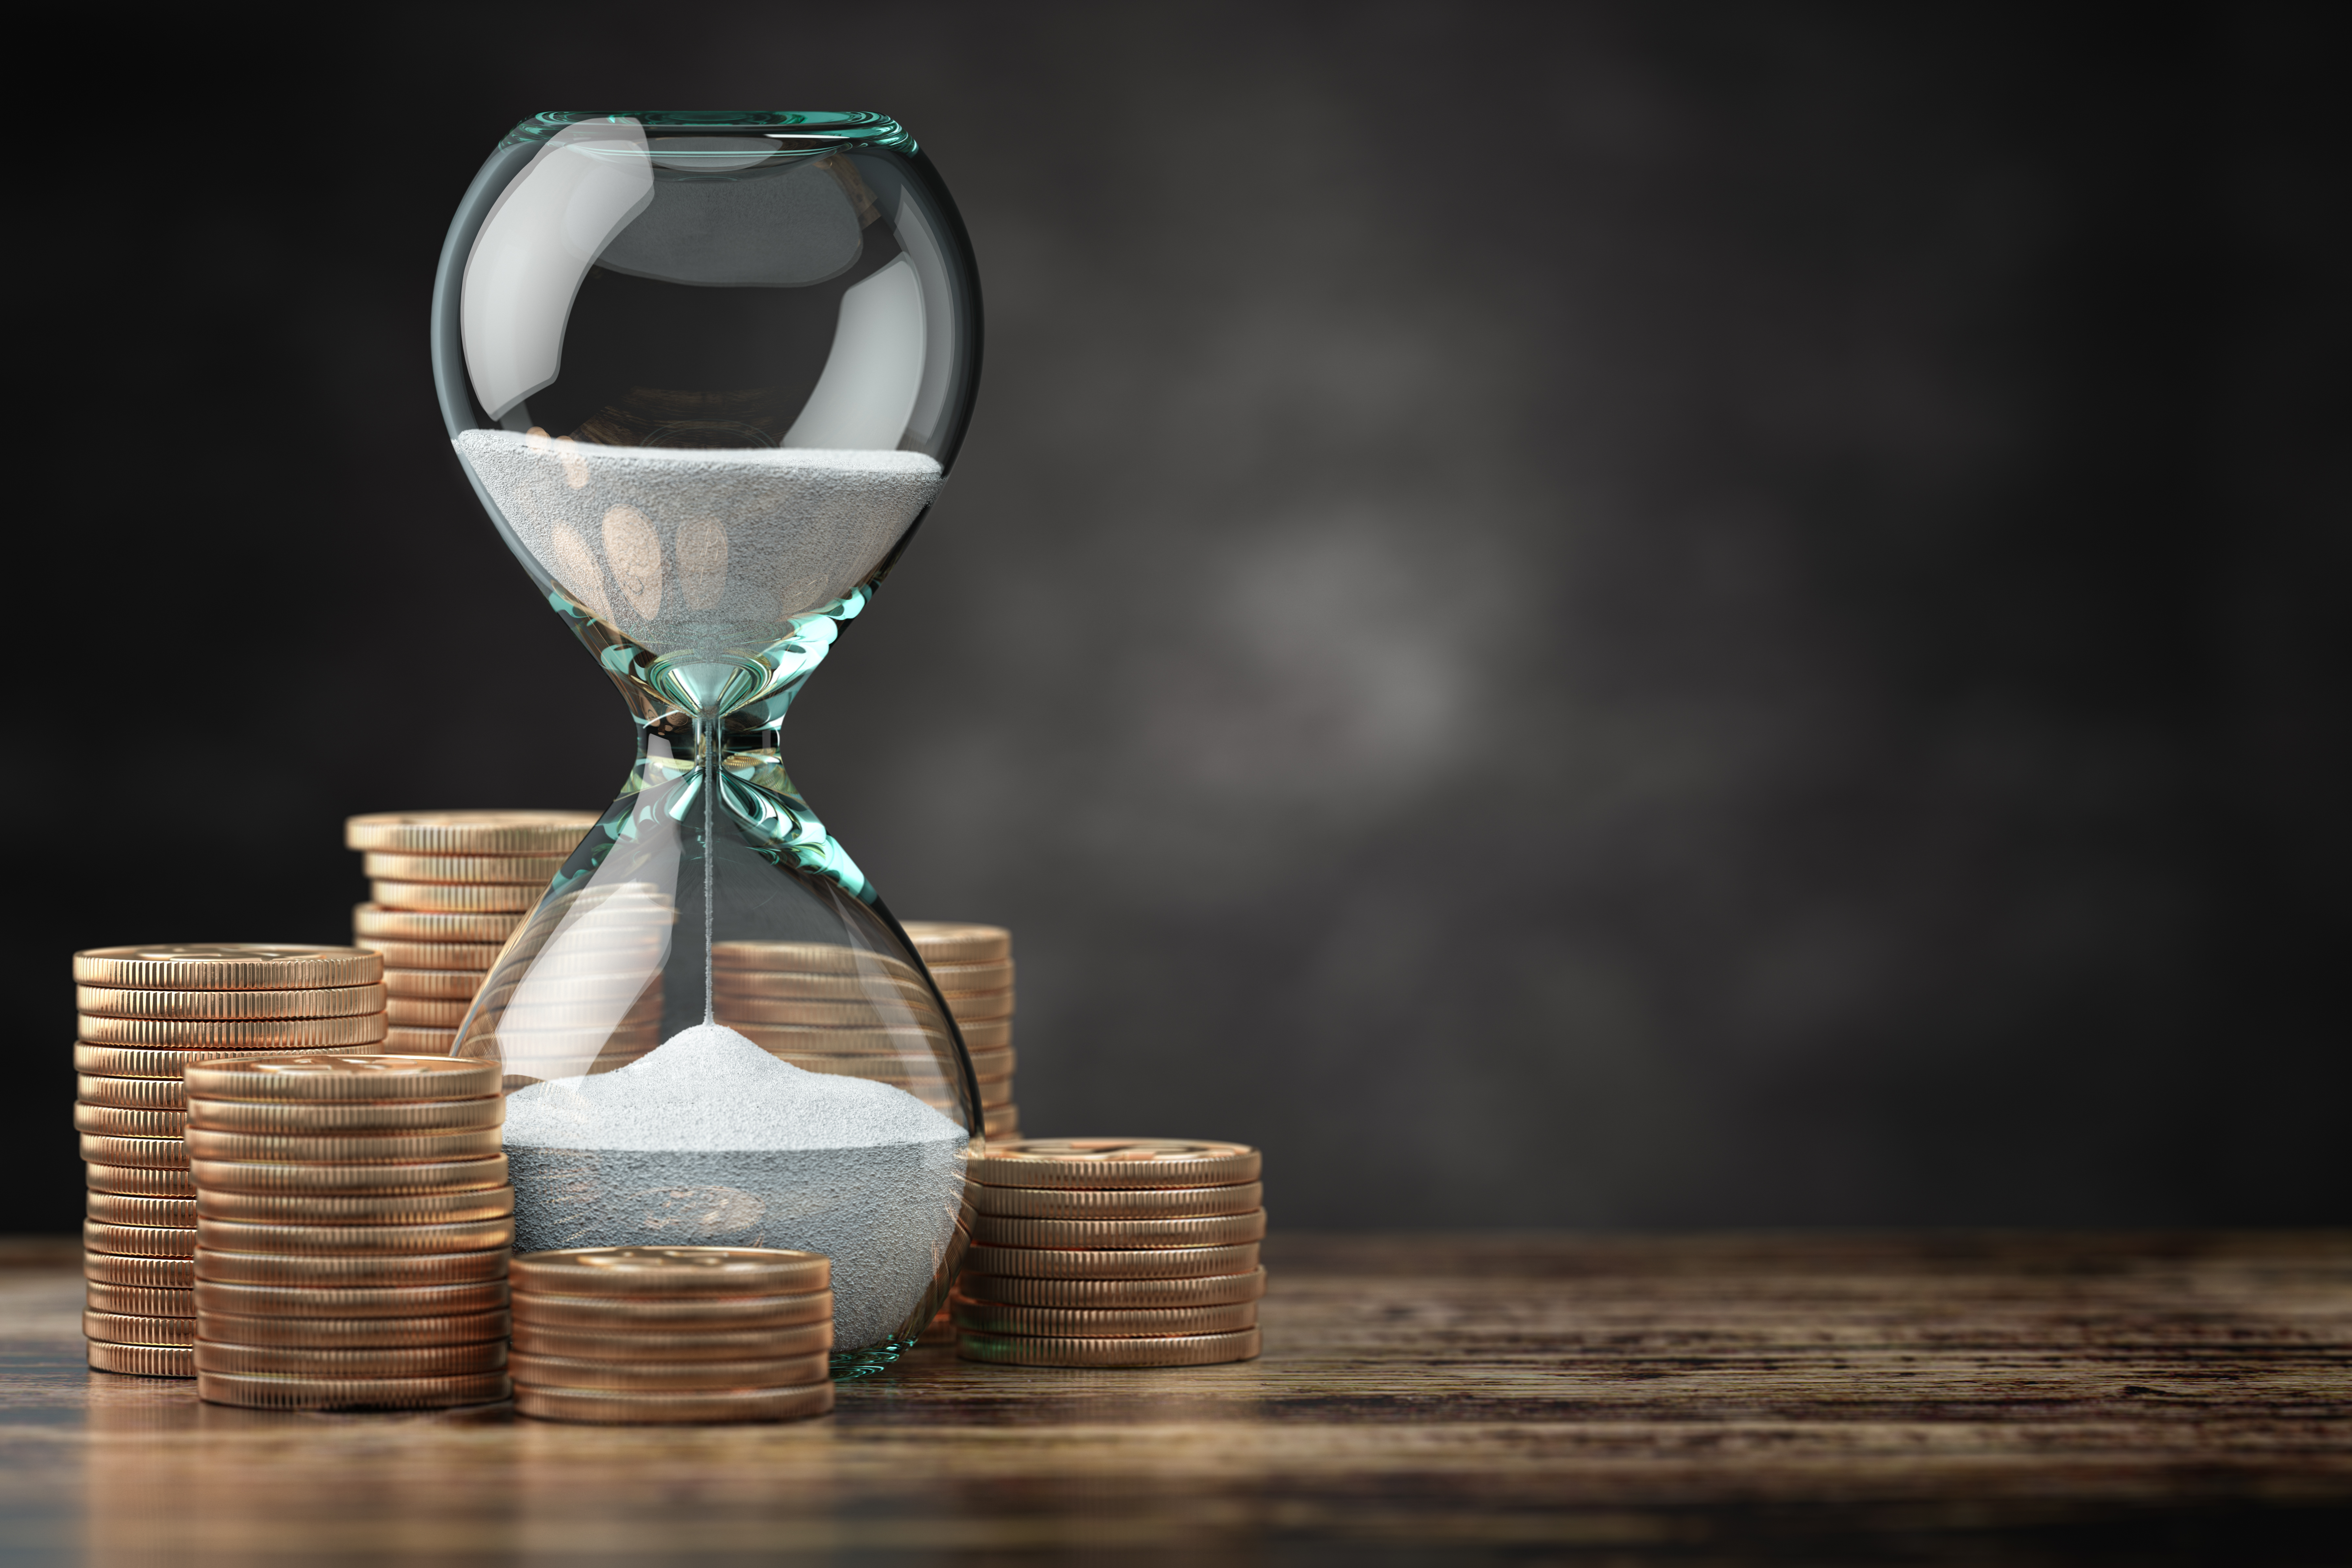 golden-coins-and-hourglass-clock-return-on-investm-MM5JG2C